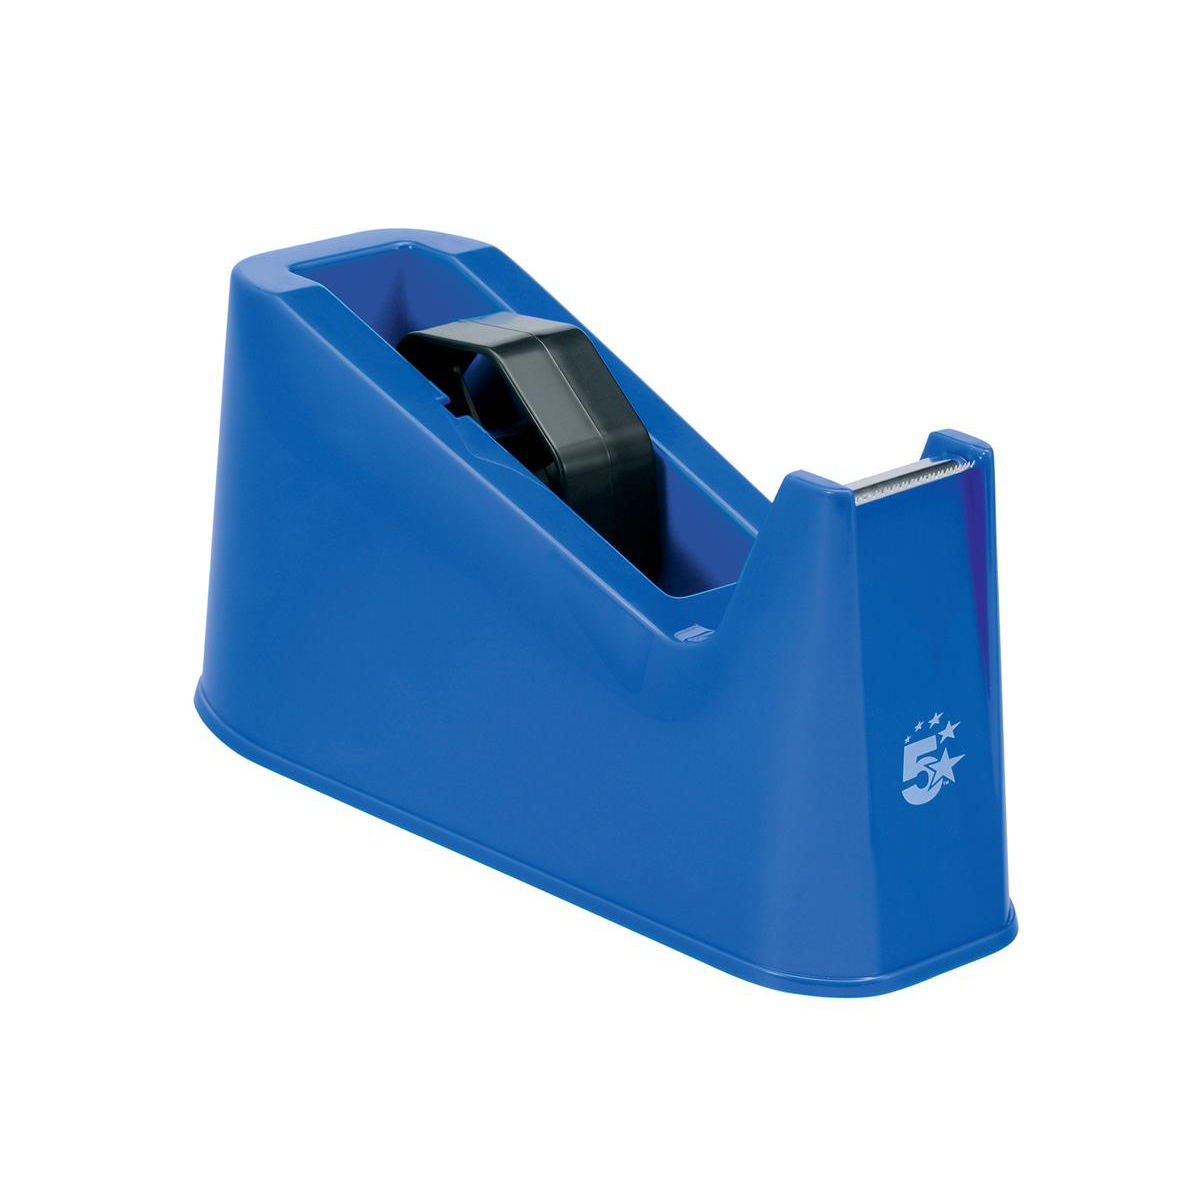 5 Star Office Tape Dispenser Desktop Weighted Non-slip Roll Capacity 25mm Width 66m Length Blue